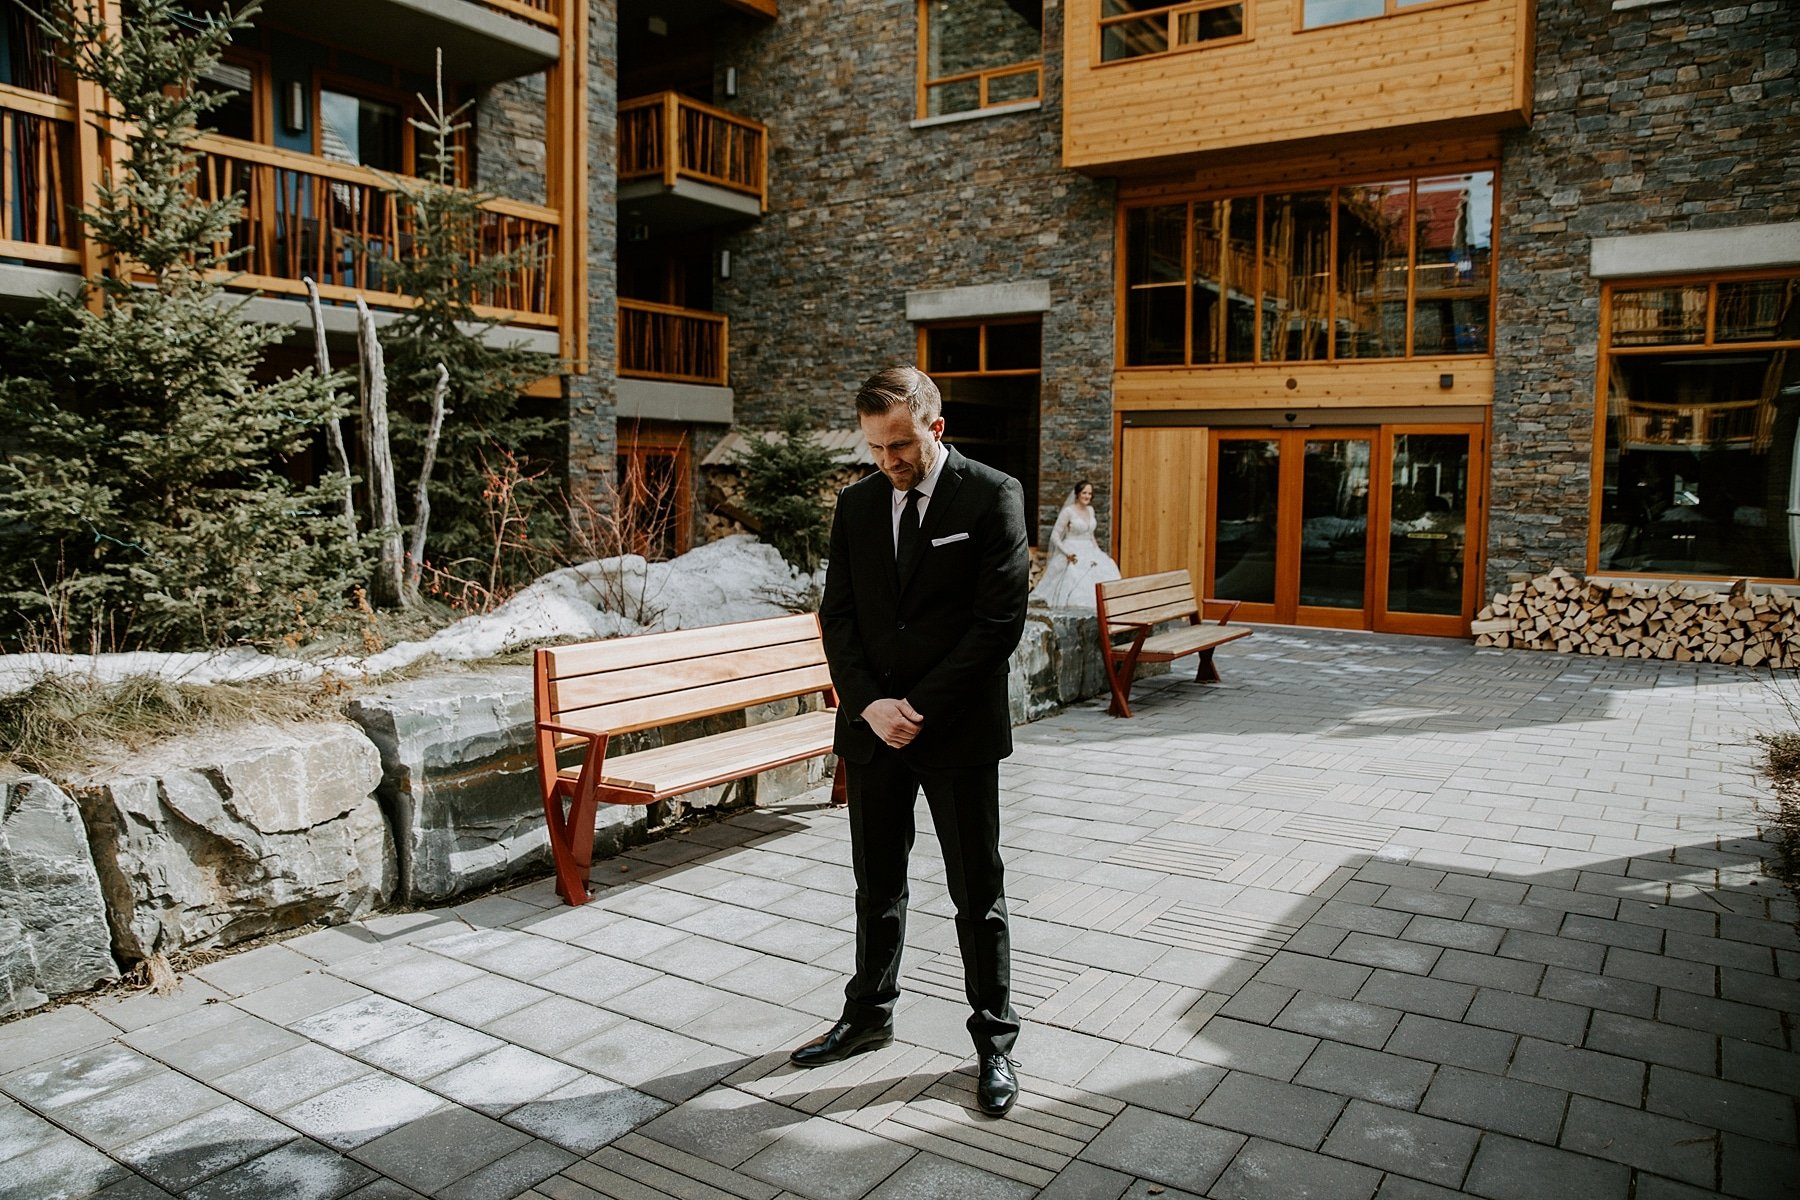 Wedding at Moose hotel in Banff